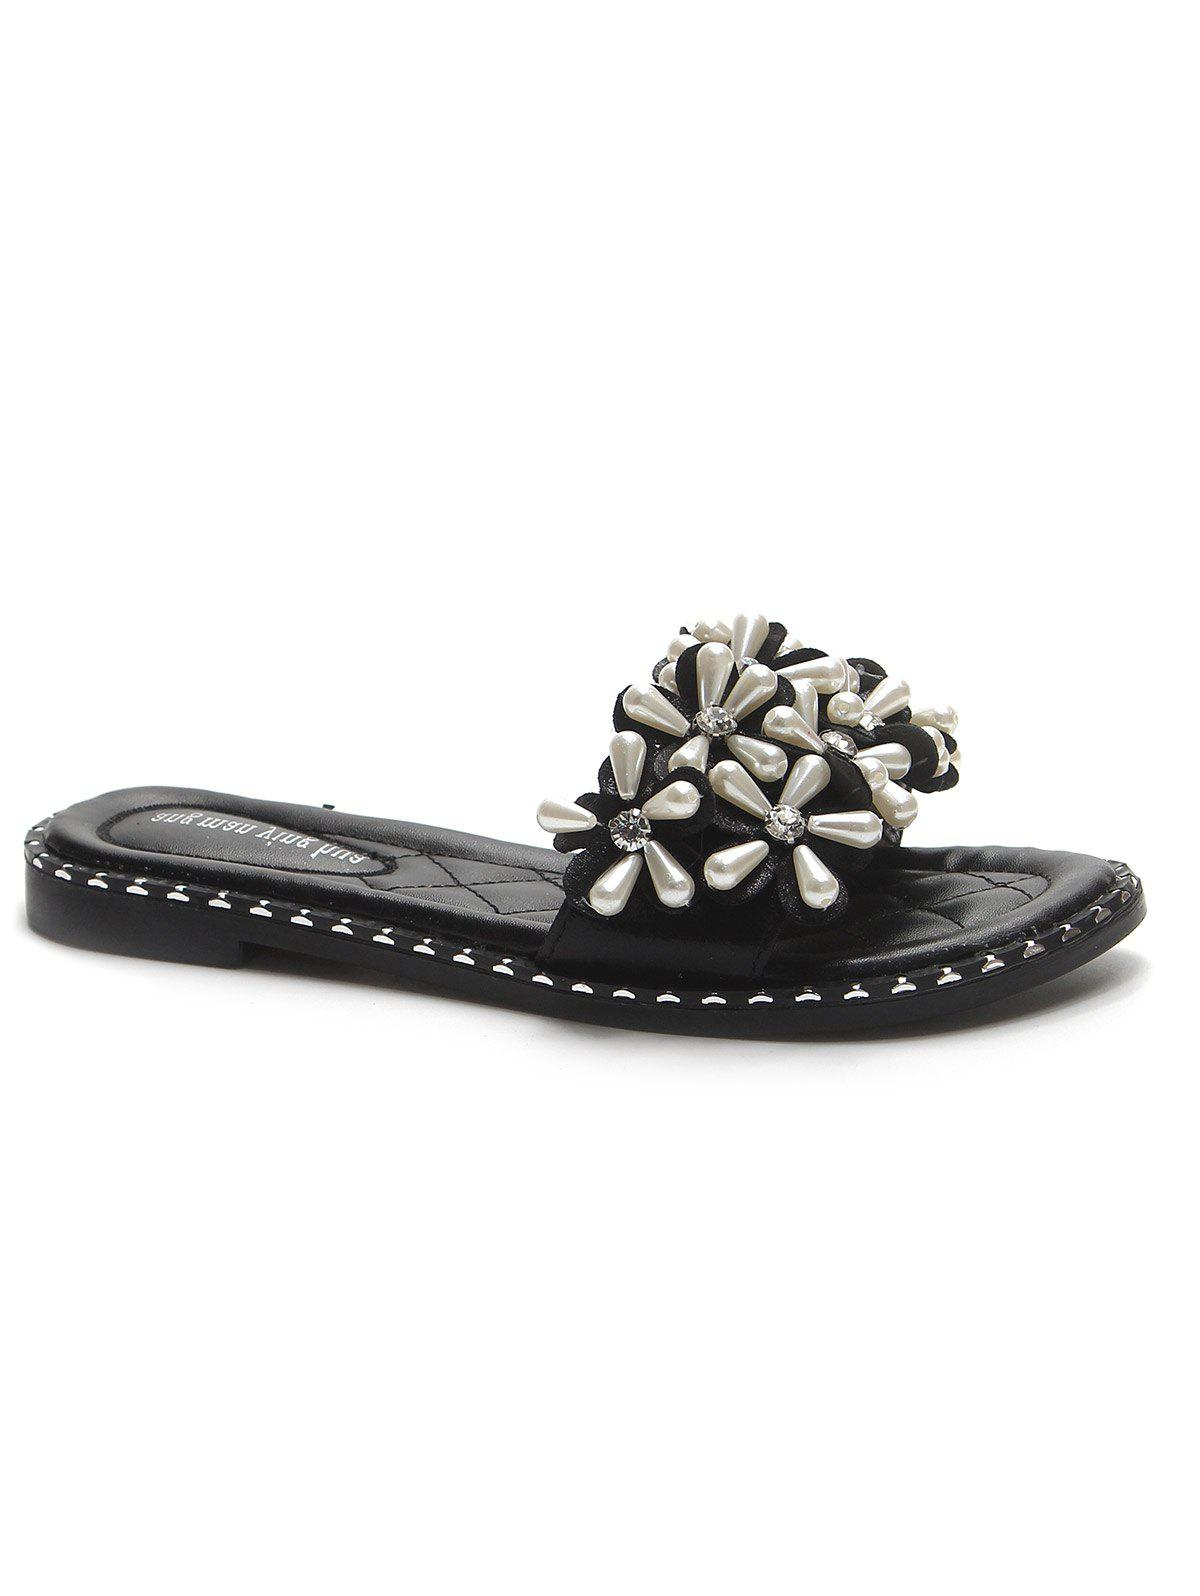 Casual Rhinestone Embellished Slides for Holiday - BLACK 39